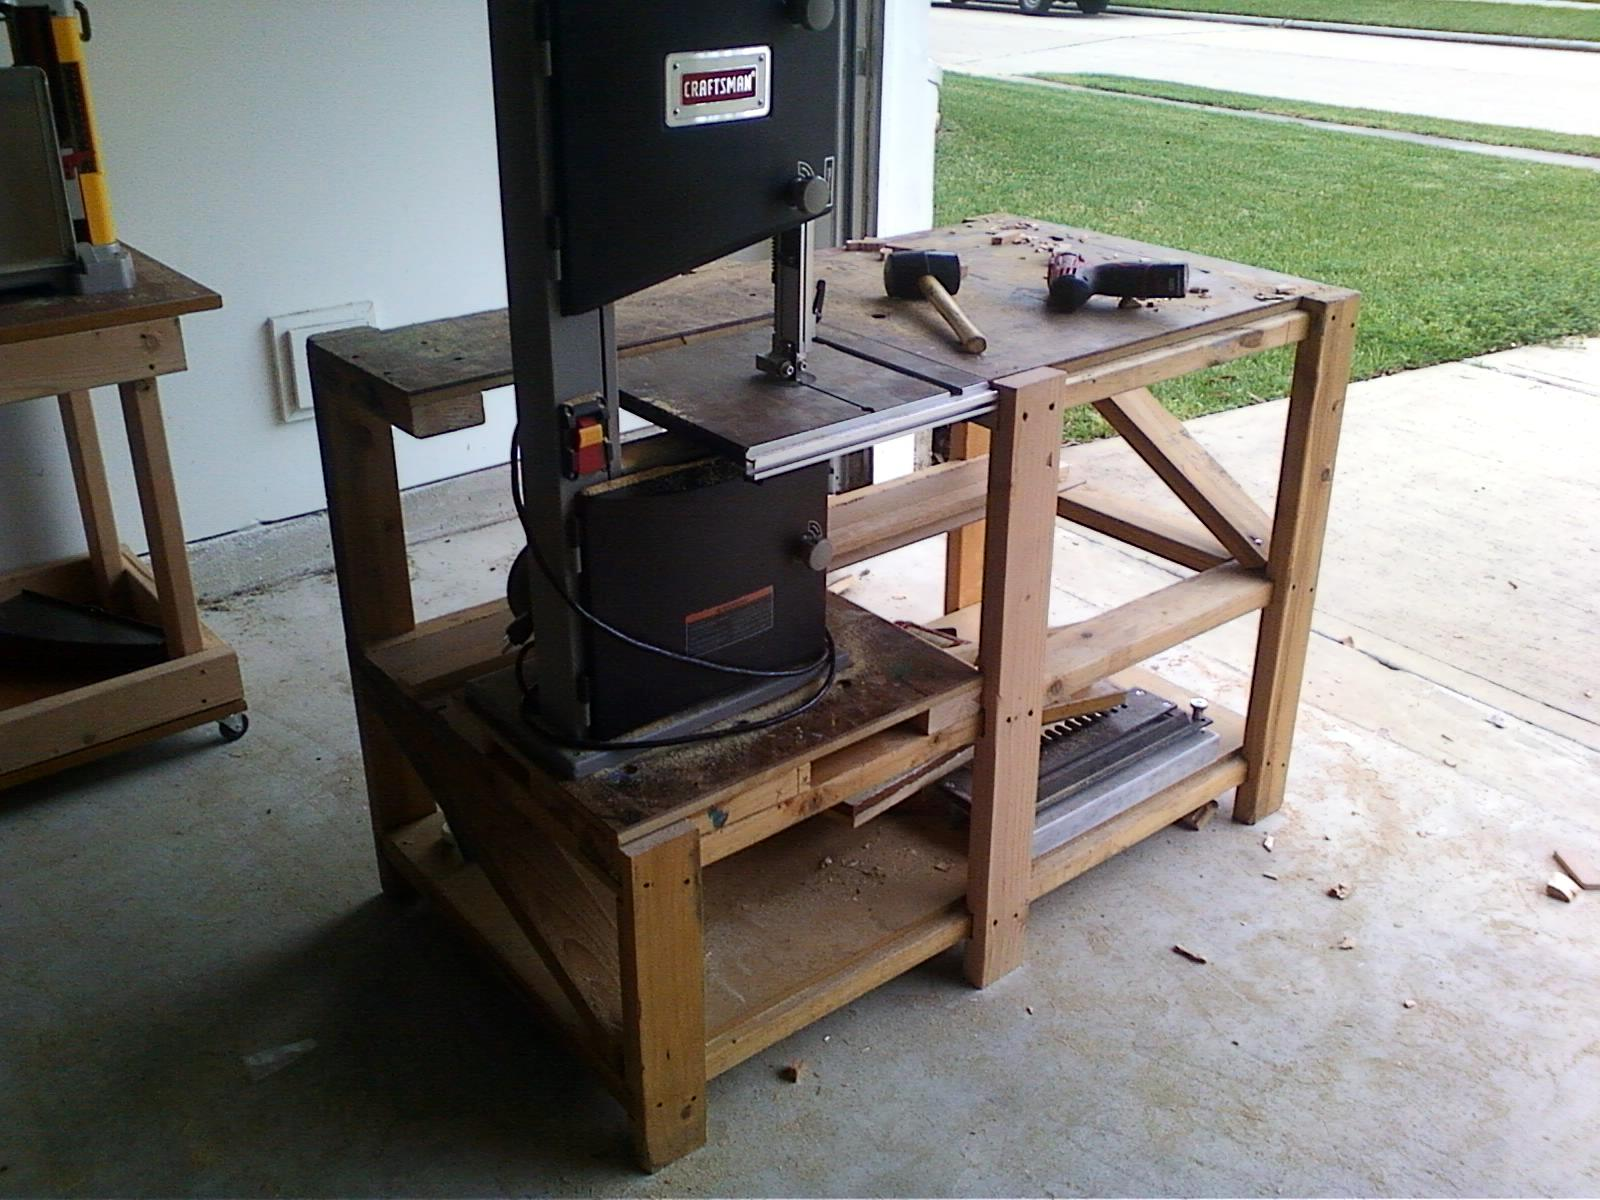 ... Band Saw Stand Plans Plans DIY Free Trebuchet Instructions « jarod711